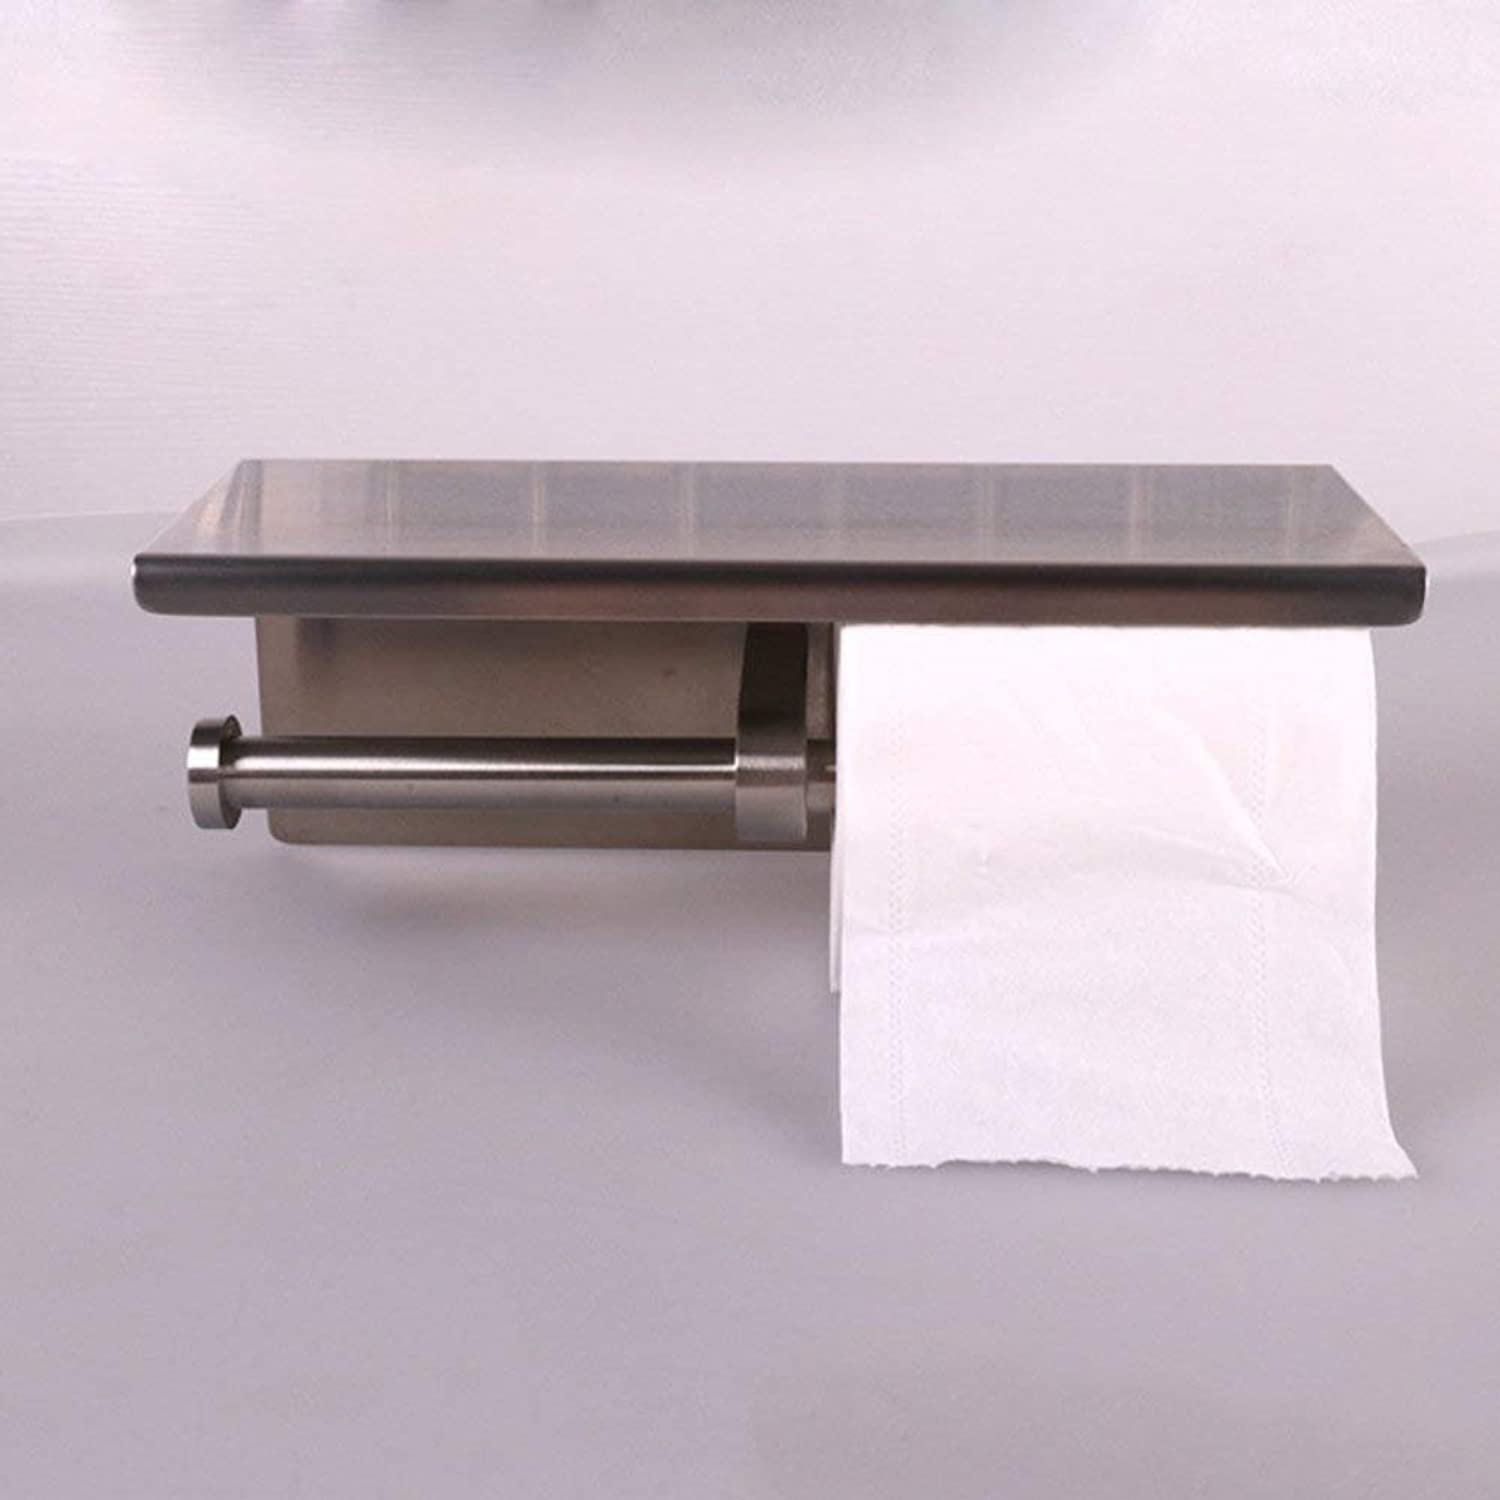 Toilet Paper in The Stainless Steel, Storage containers, Bathroom Mirror Double use of The Toilet Paper, 250mm100mm100mm